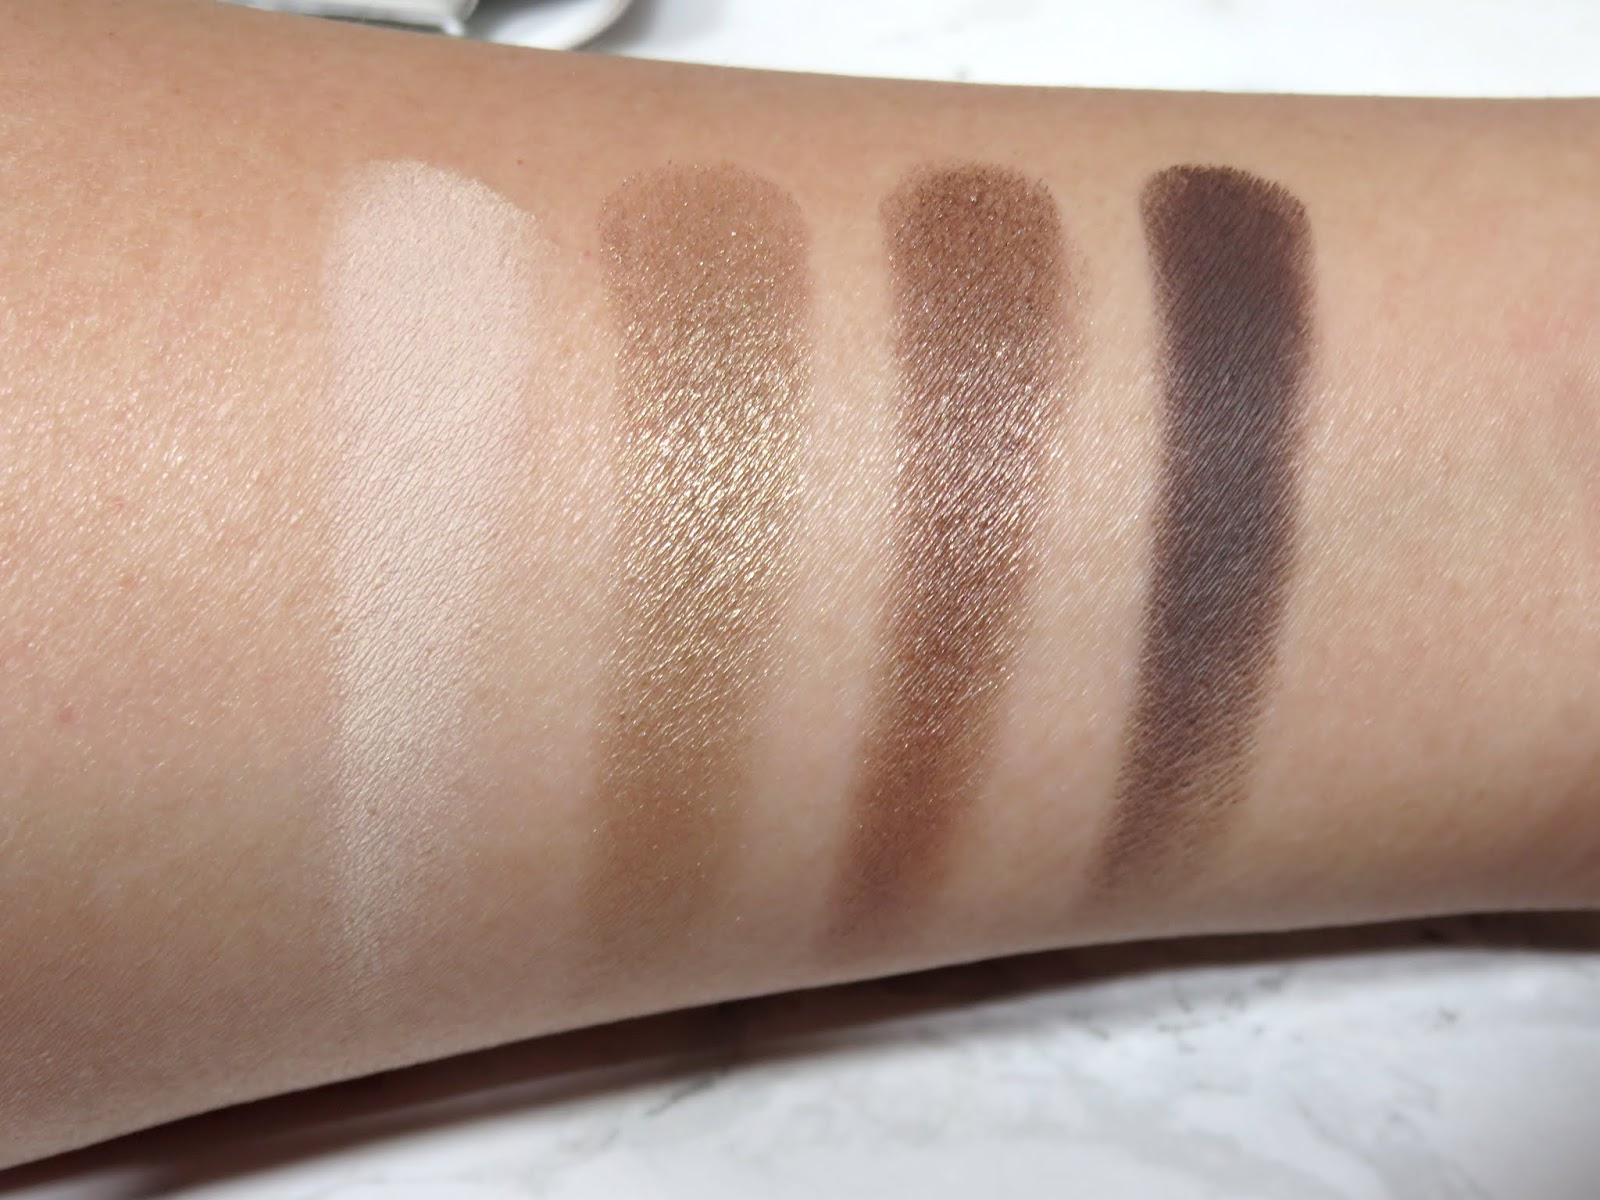 Tom Ford Noir Fume Eye Color Quad Swatches